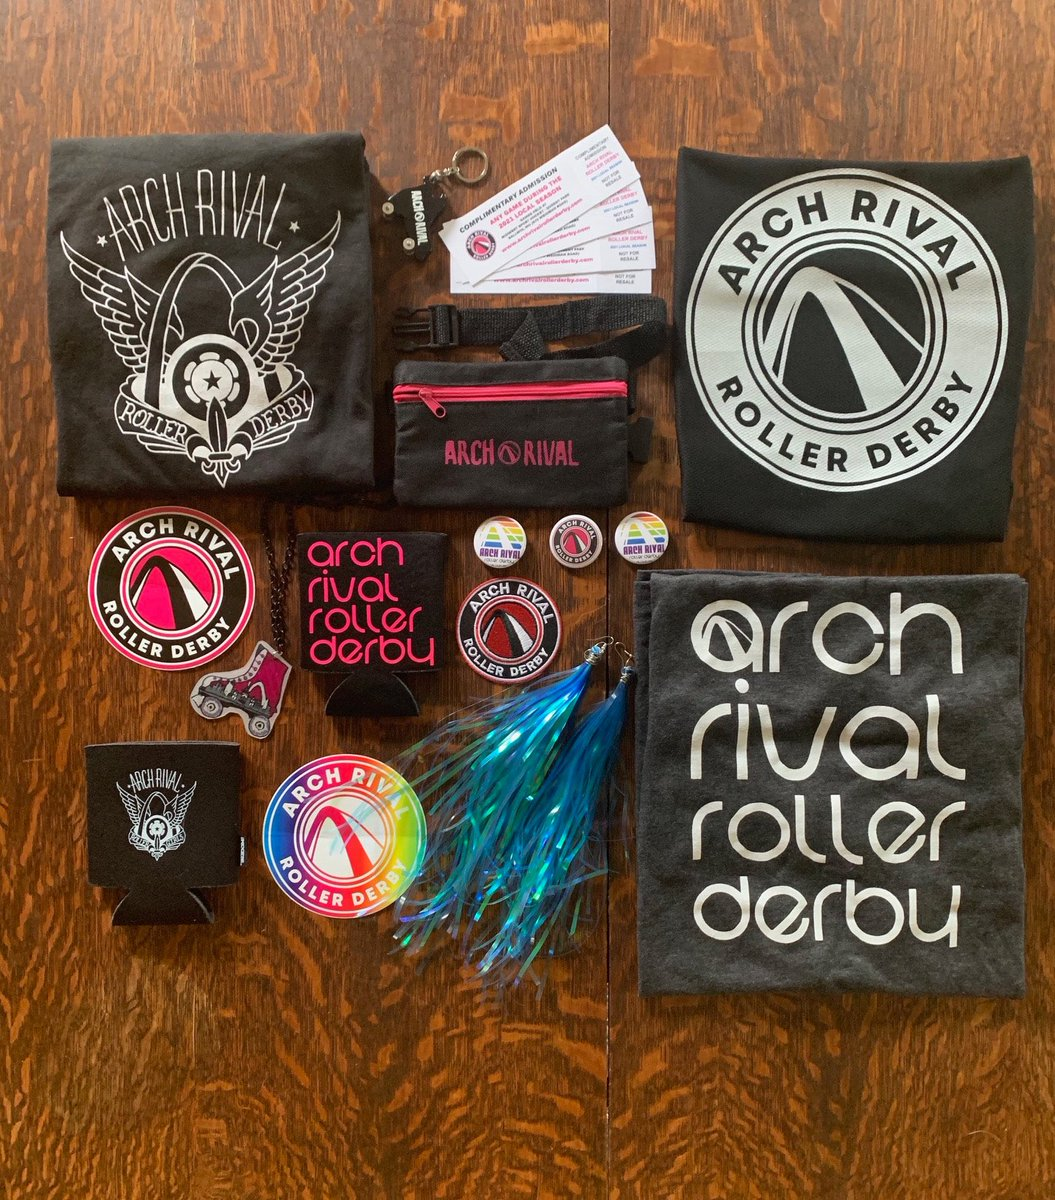 Each basket contains different ARCH related items and beautiful prints from @rdunnell. Details of the 3 baskets can be found on the website https://t.co/t1WKwSDCkc #stl #charity #archrival #derbytwitter #tentmission https://t.co/3pJcYo6j32